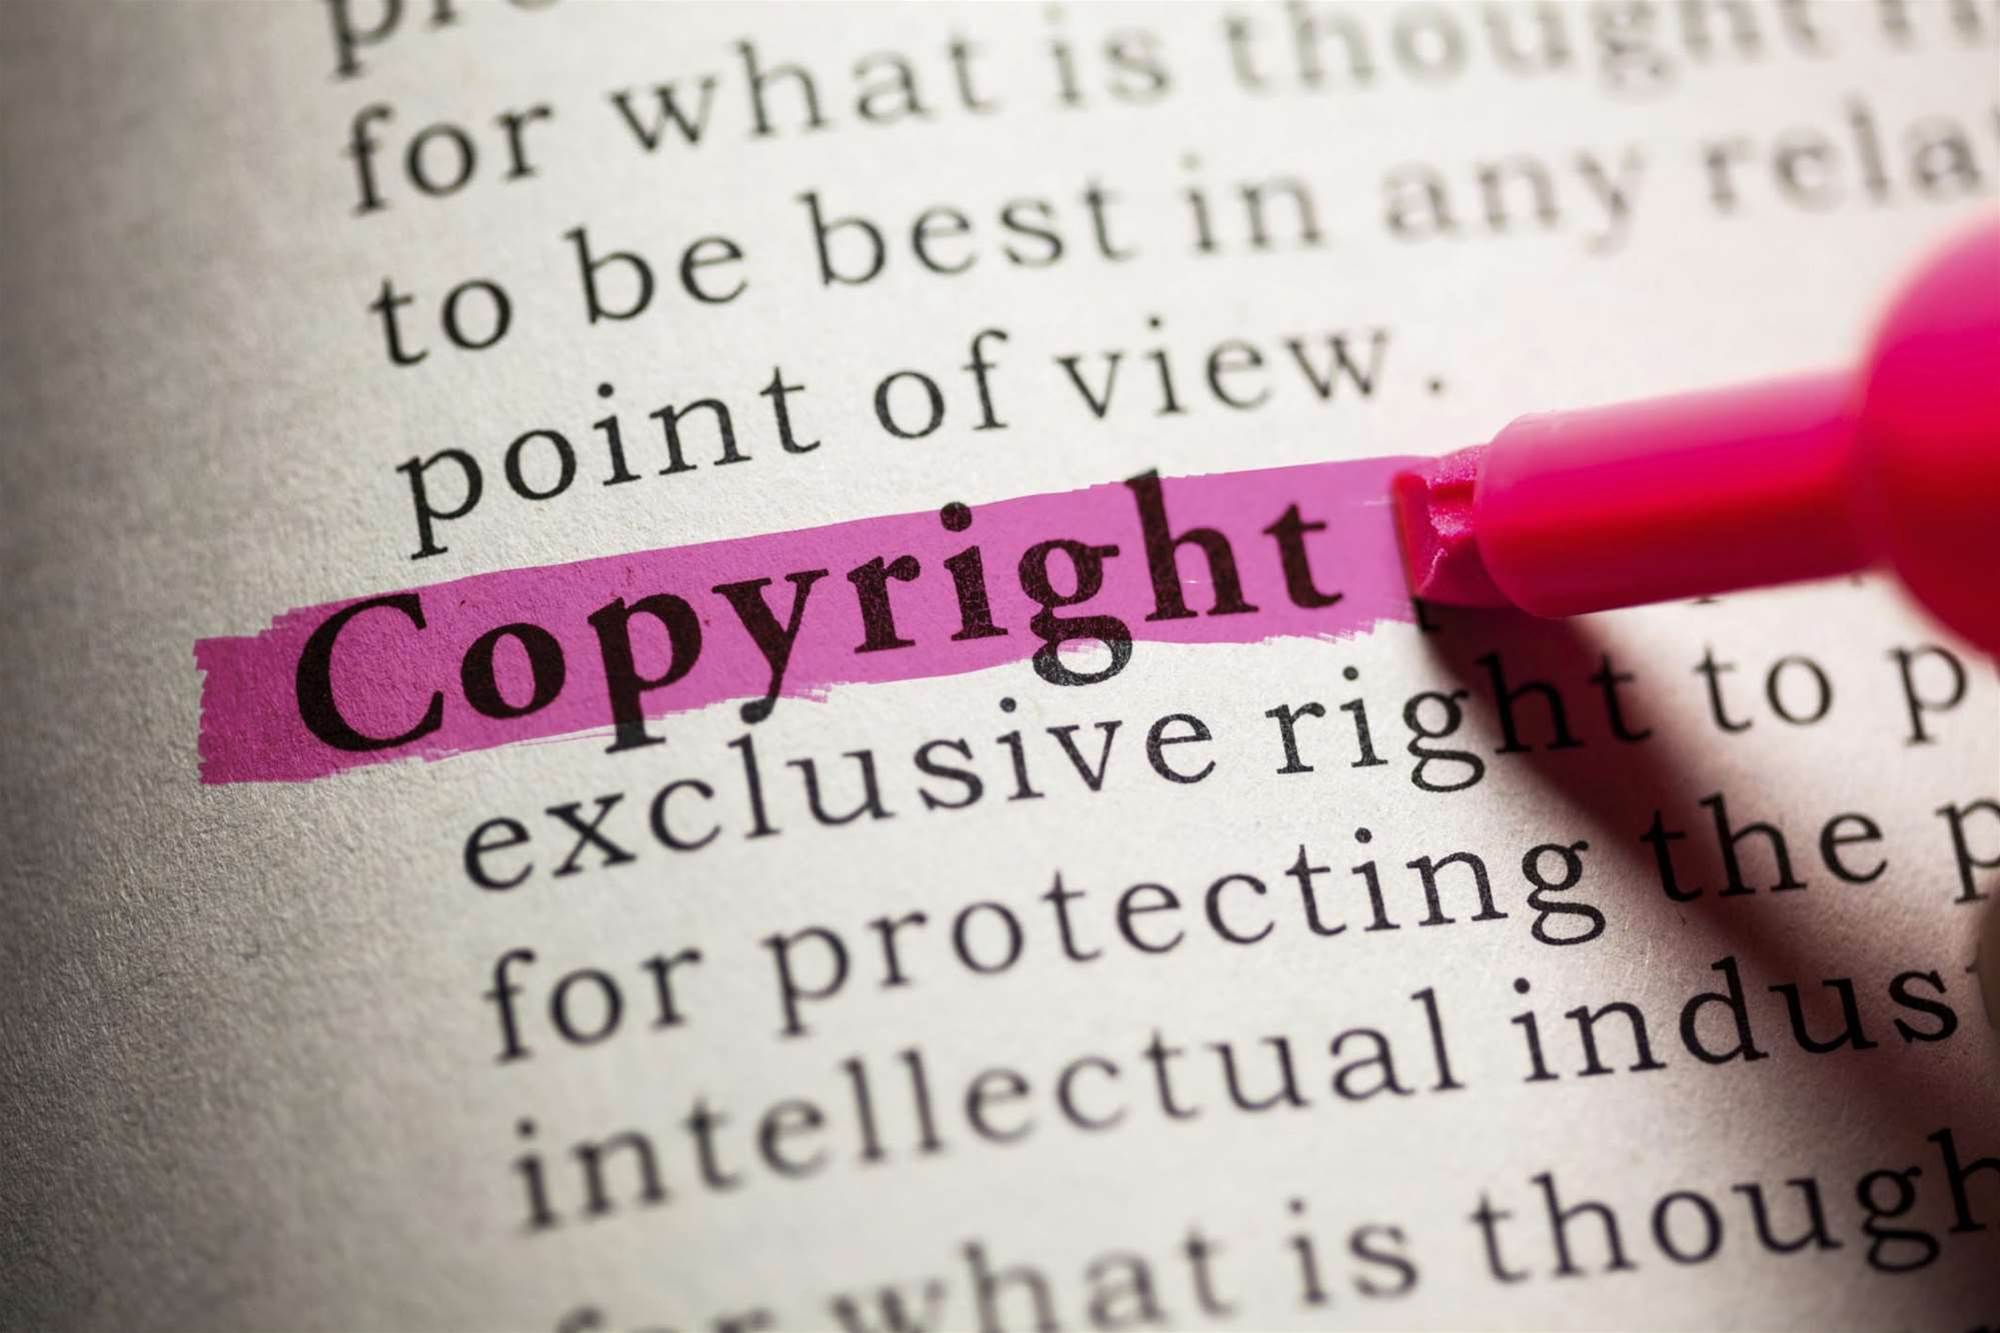 Economists: Consumers will suffer under copyright crackdown